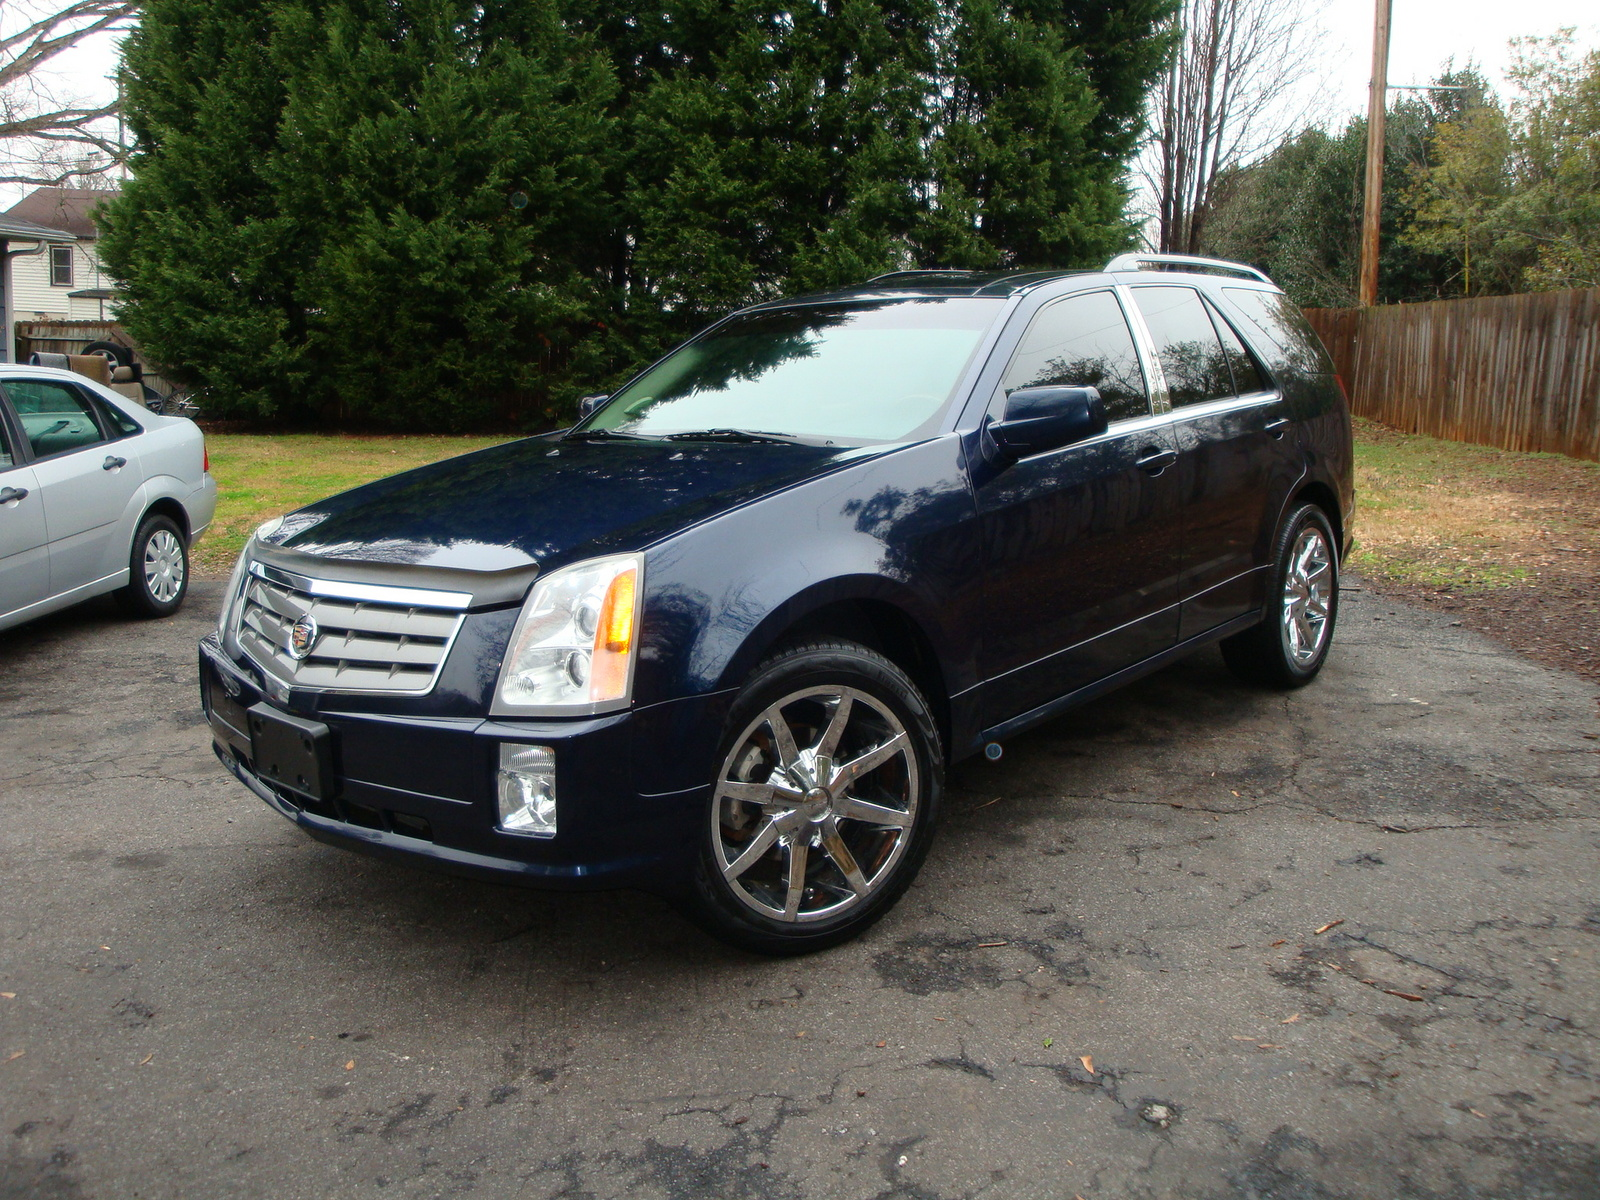 2005 Cadillac Srx - Pictures